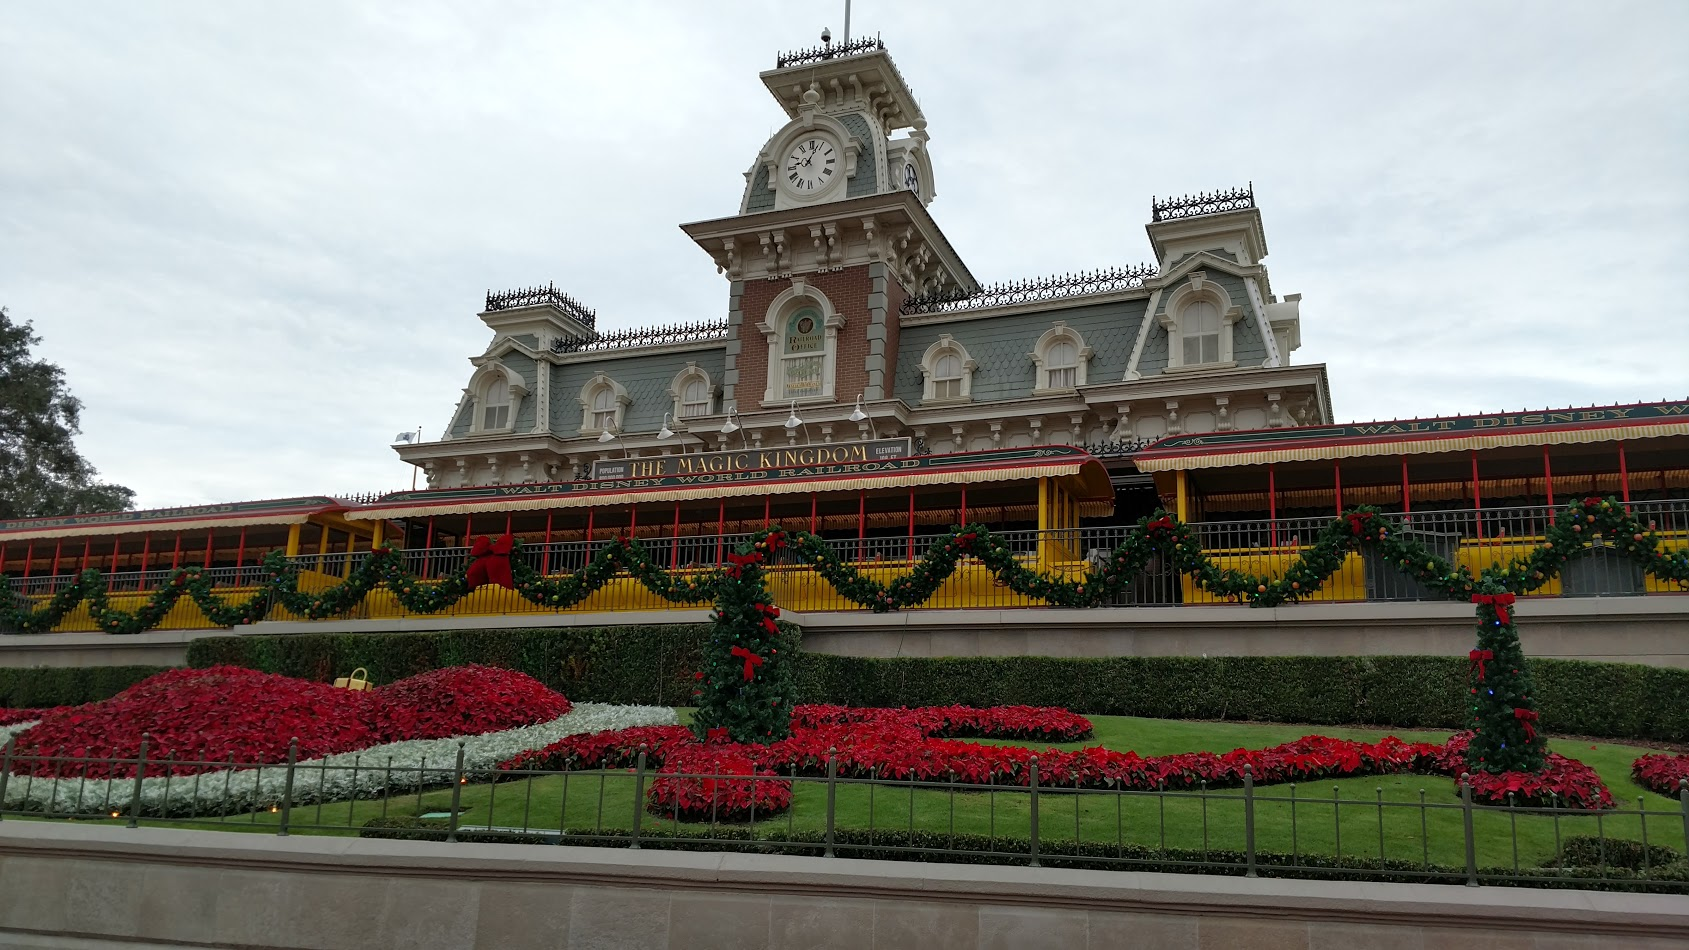 How Long Is Disney Keeping Their Christmas Decorations Up For